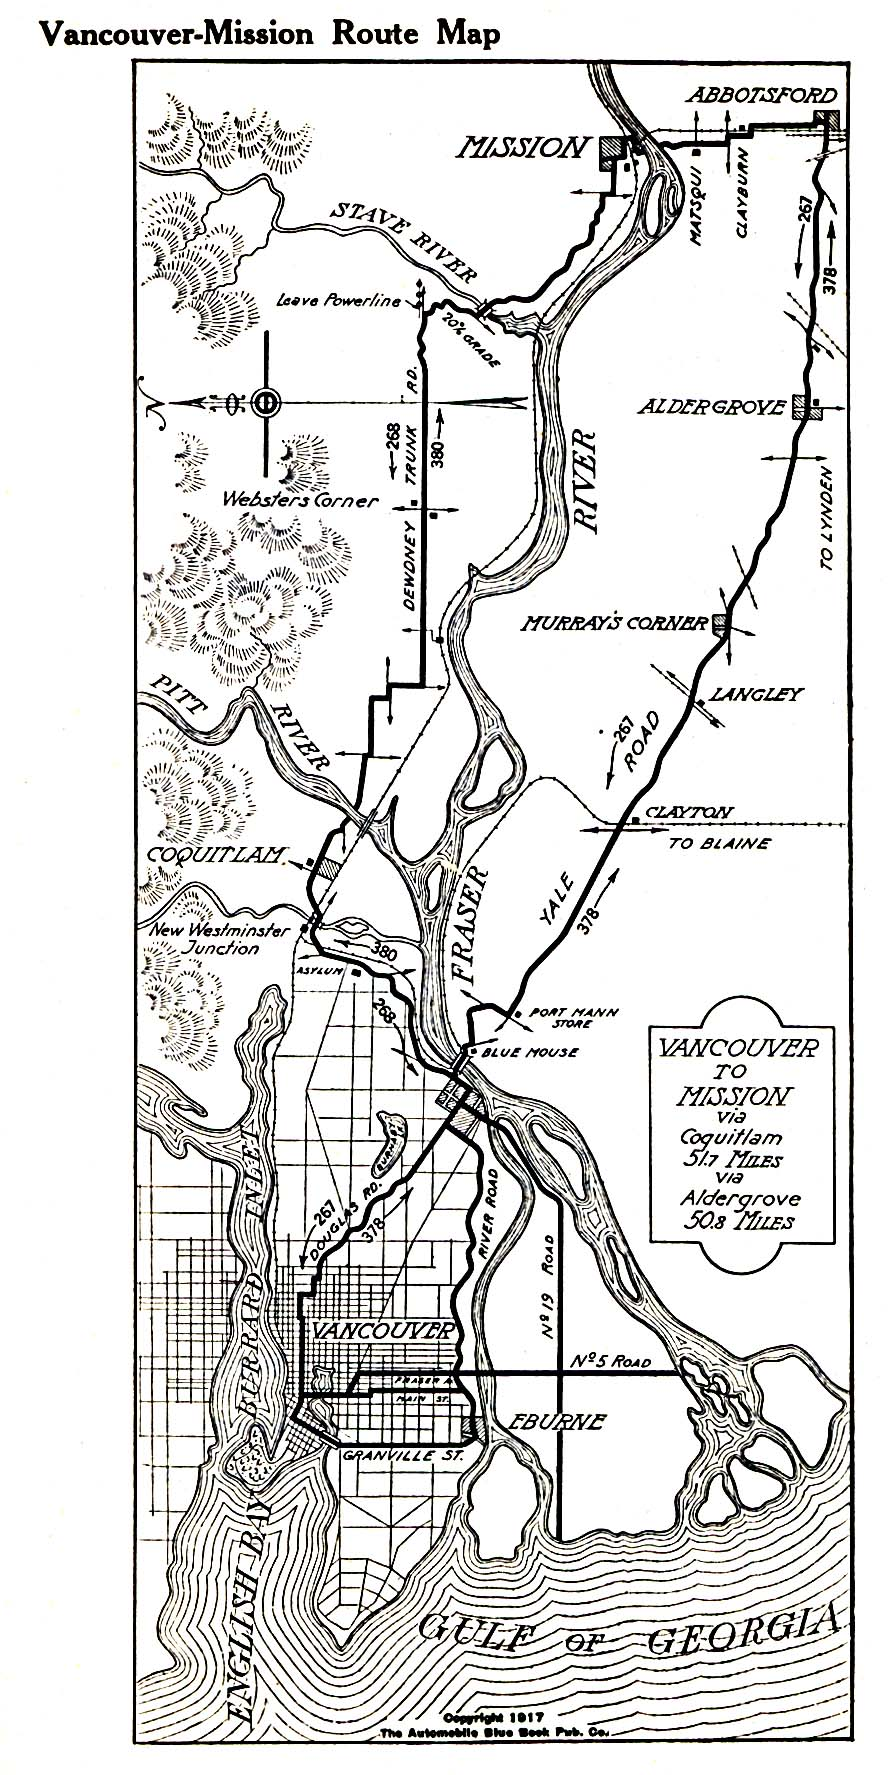 Vancouver-Mission Route Map, British Columbia, Canada